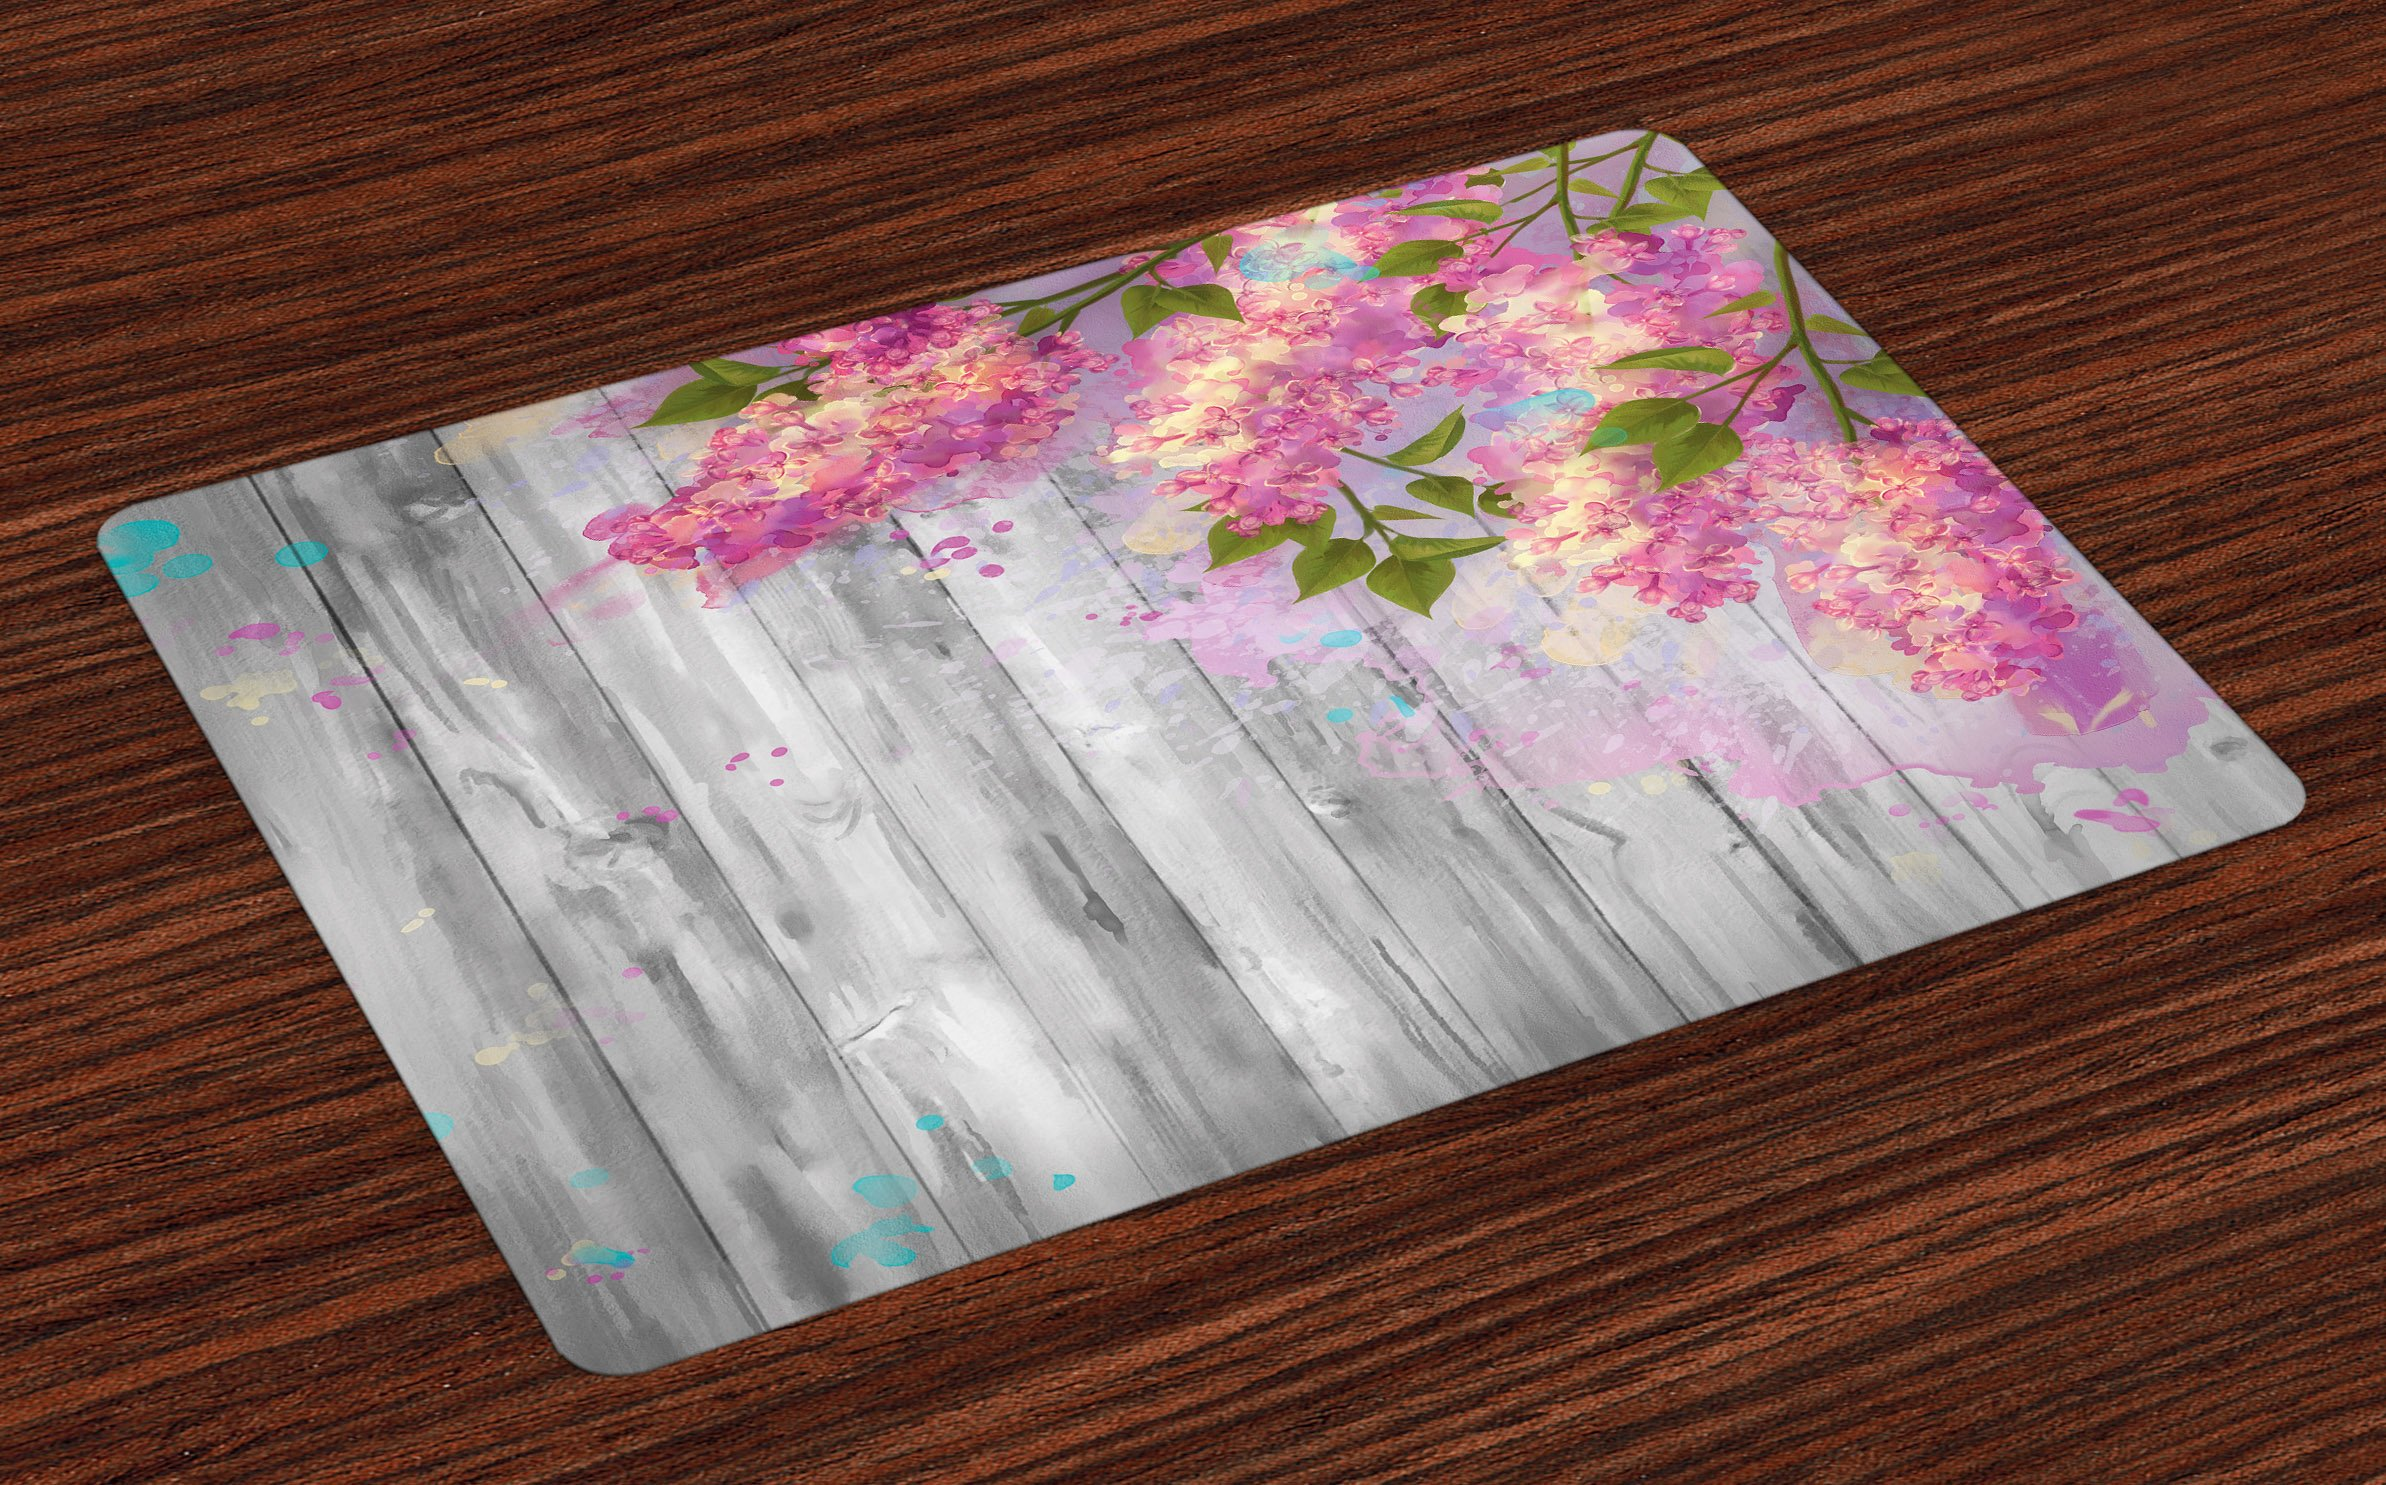 Lunarable Flower Place Mats Set of 4, Floral Watercolor Style Effect Branches of Lilac Bloom on Wood Print Background, Washable Fabric Placemats for Dining Room Kitchen Table Decor, Grey and Pink